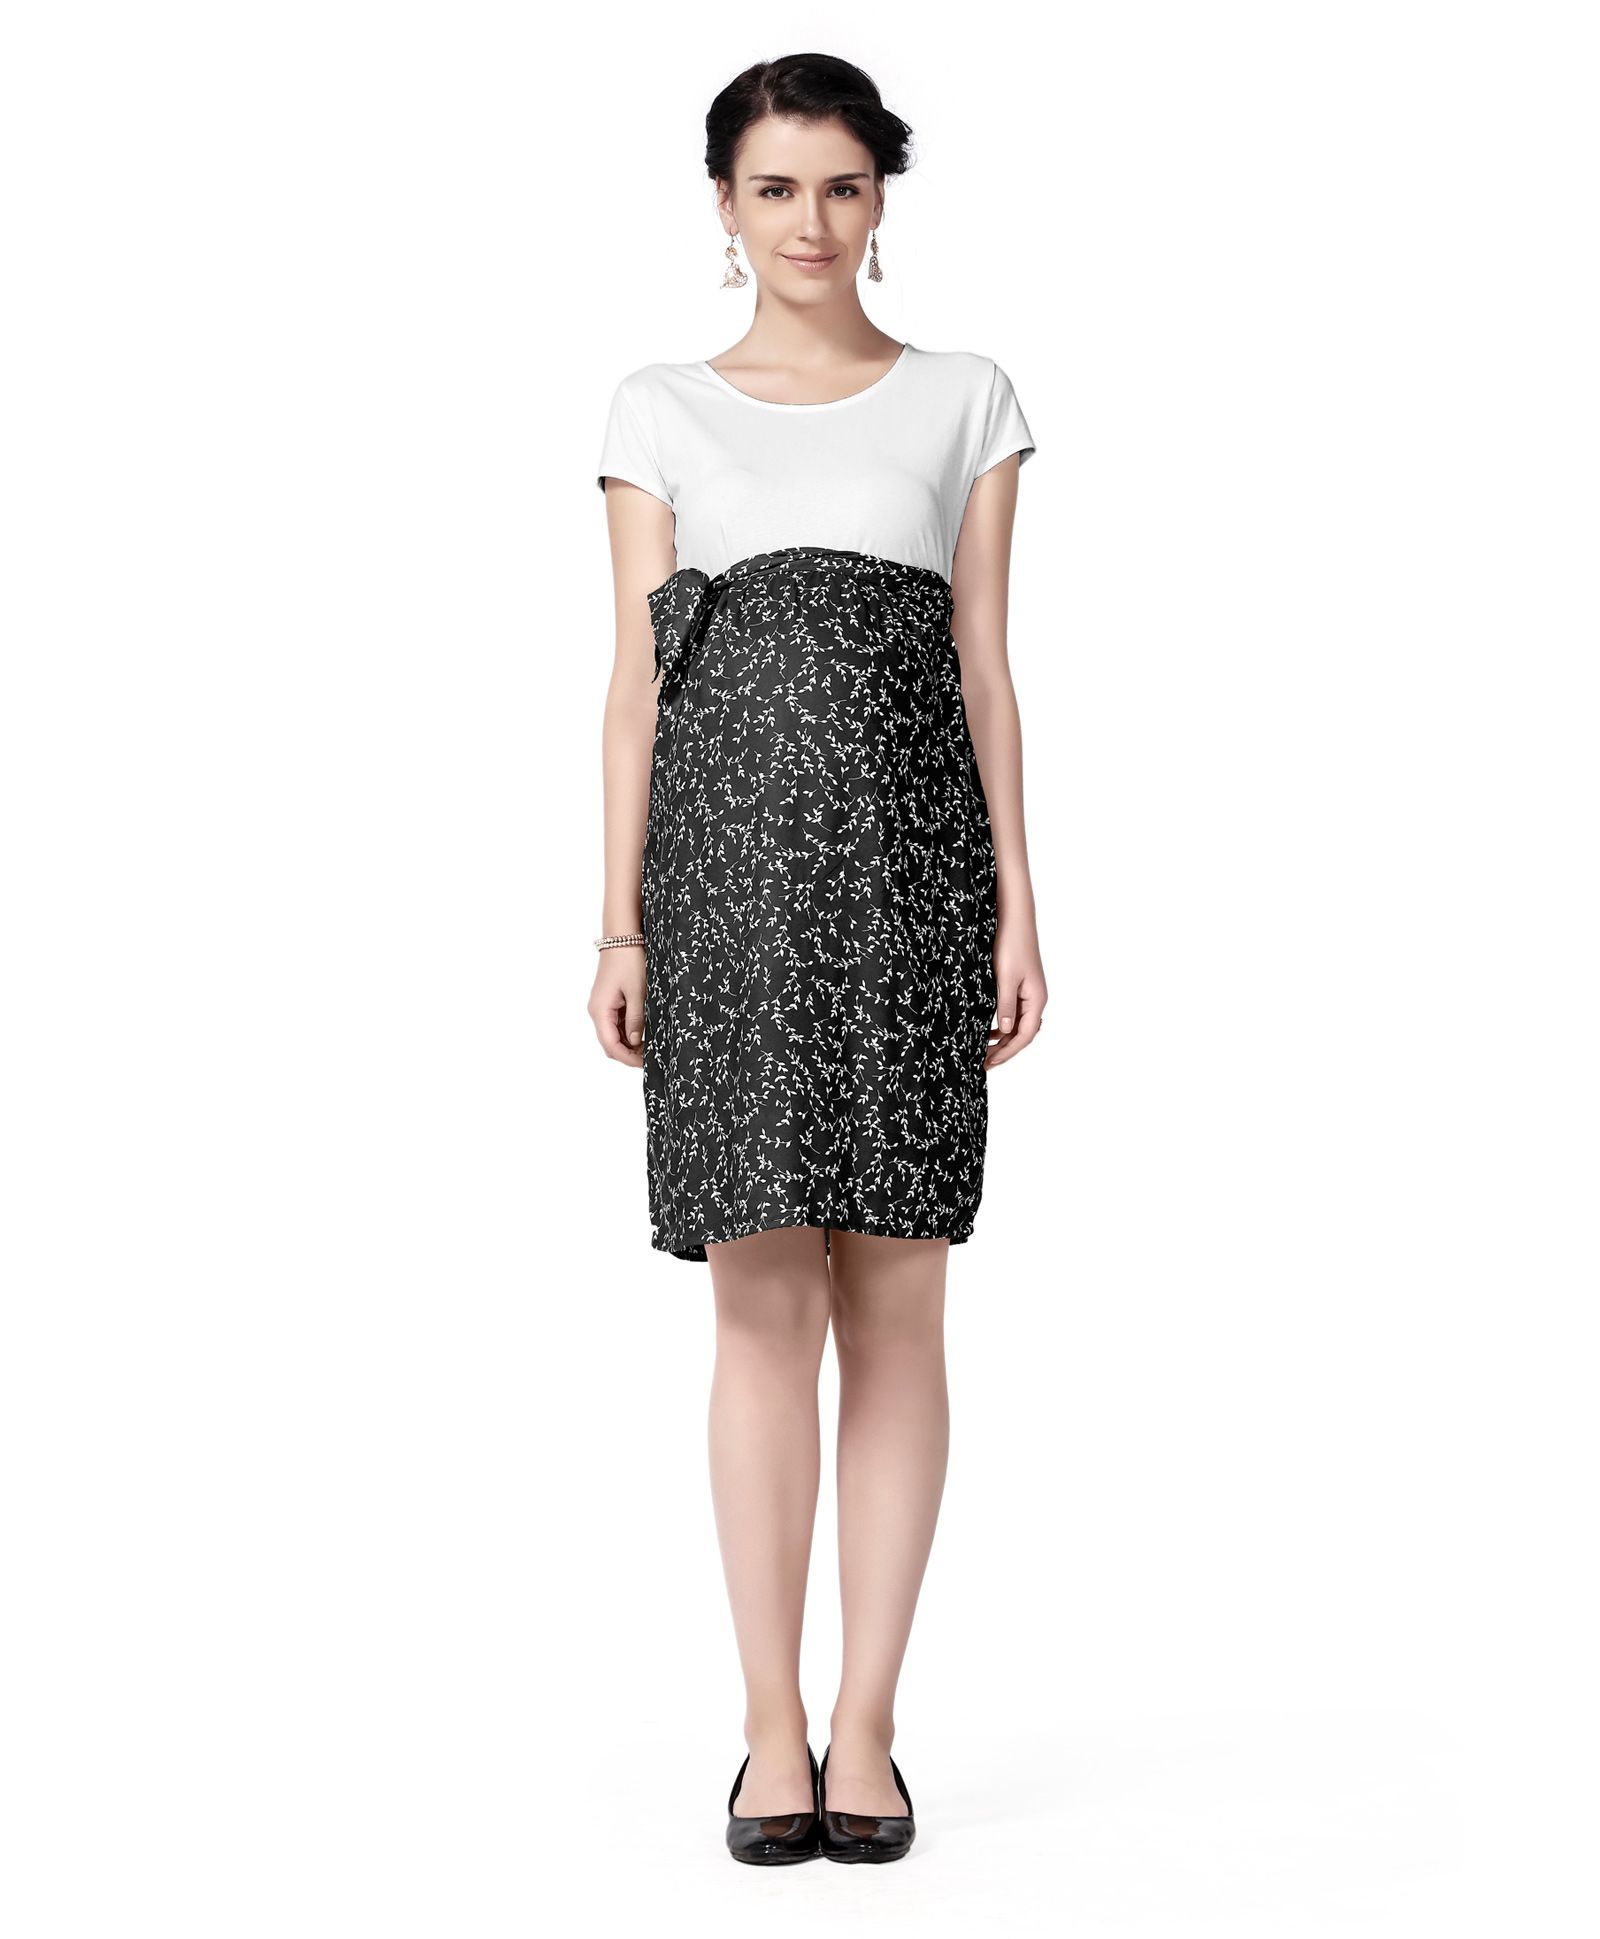 e6a604117c Innovative Maternity A Line Floral Dress Black   White Online in India ...